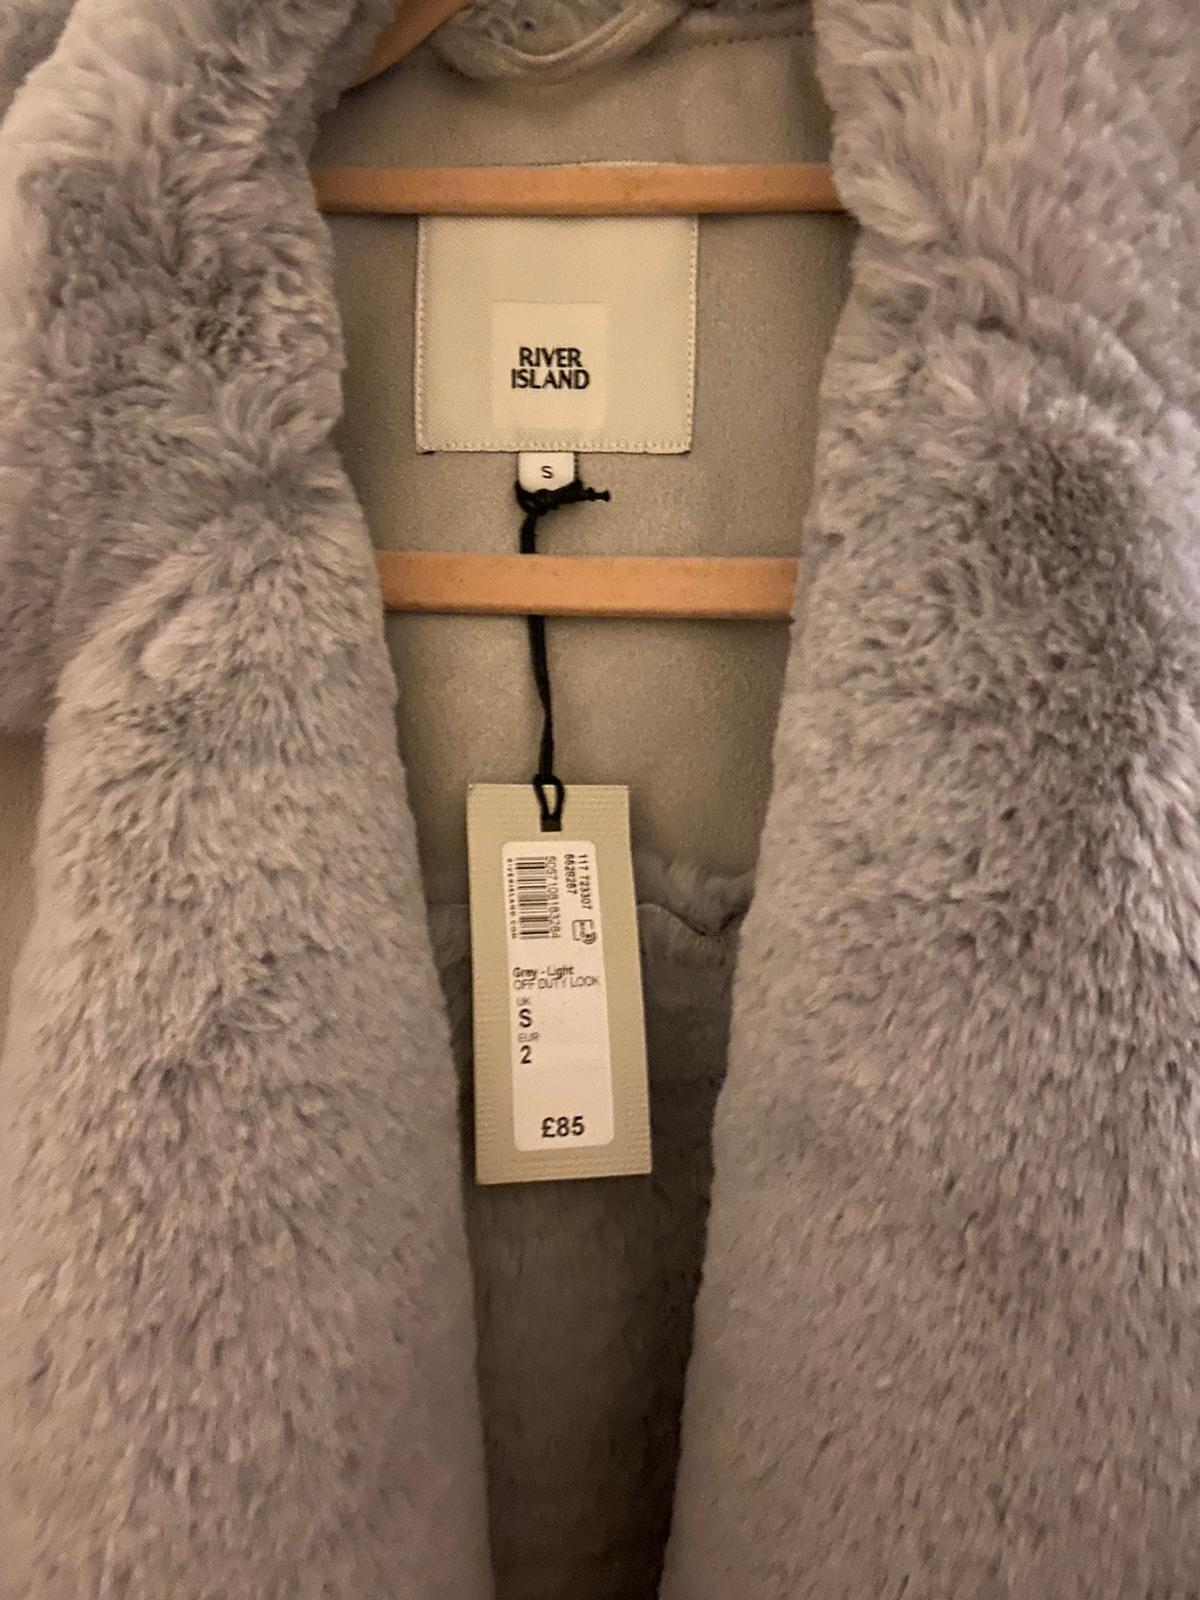 Grey River Island Coat, NWT, Size small. RRP £85. Open to offers.